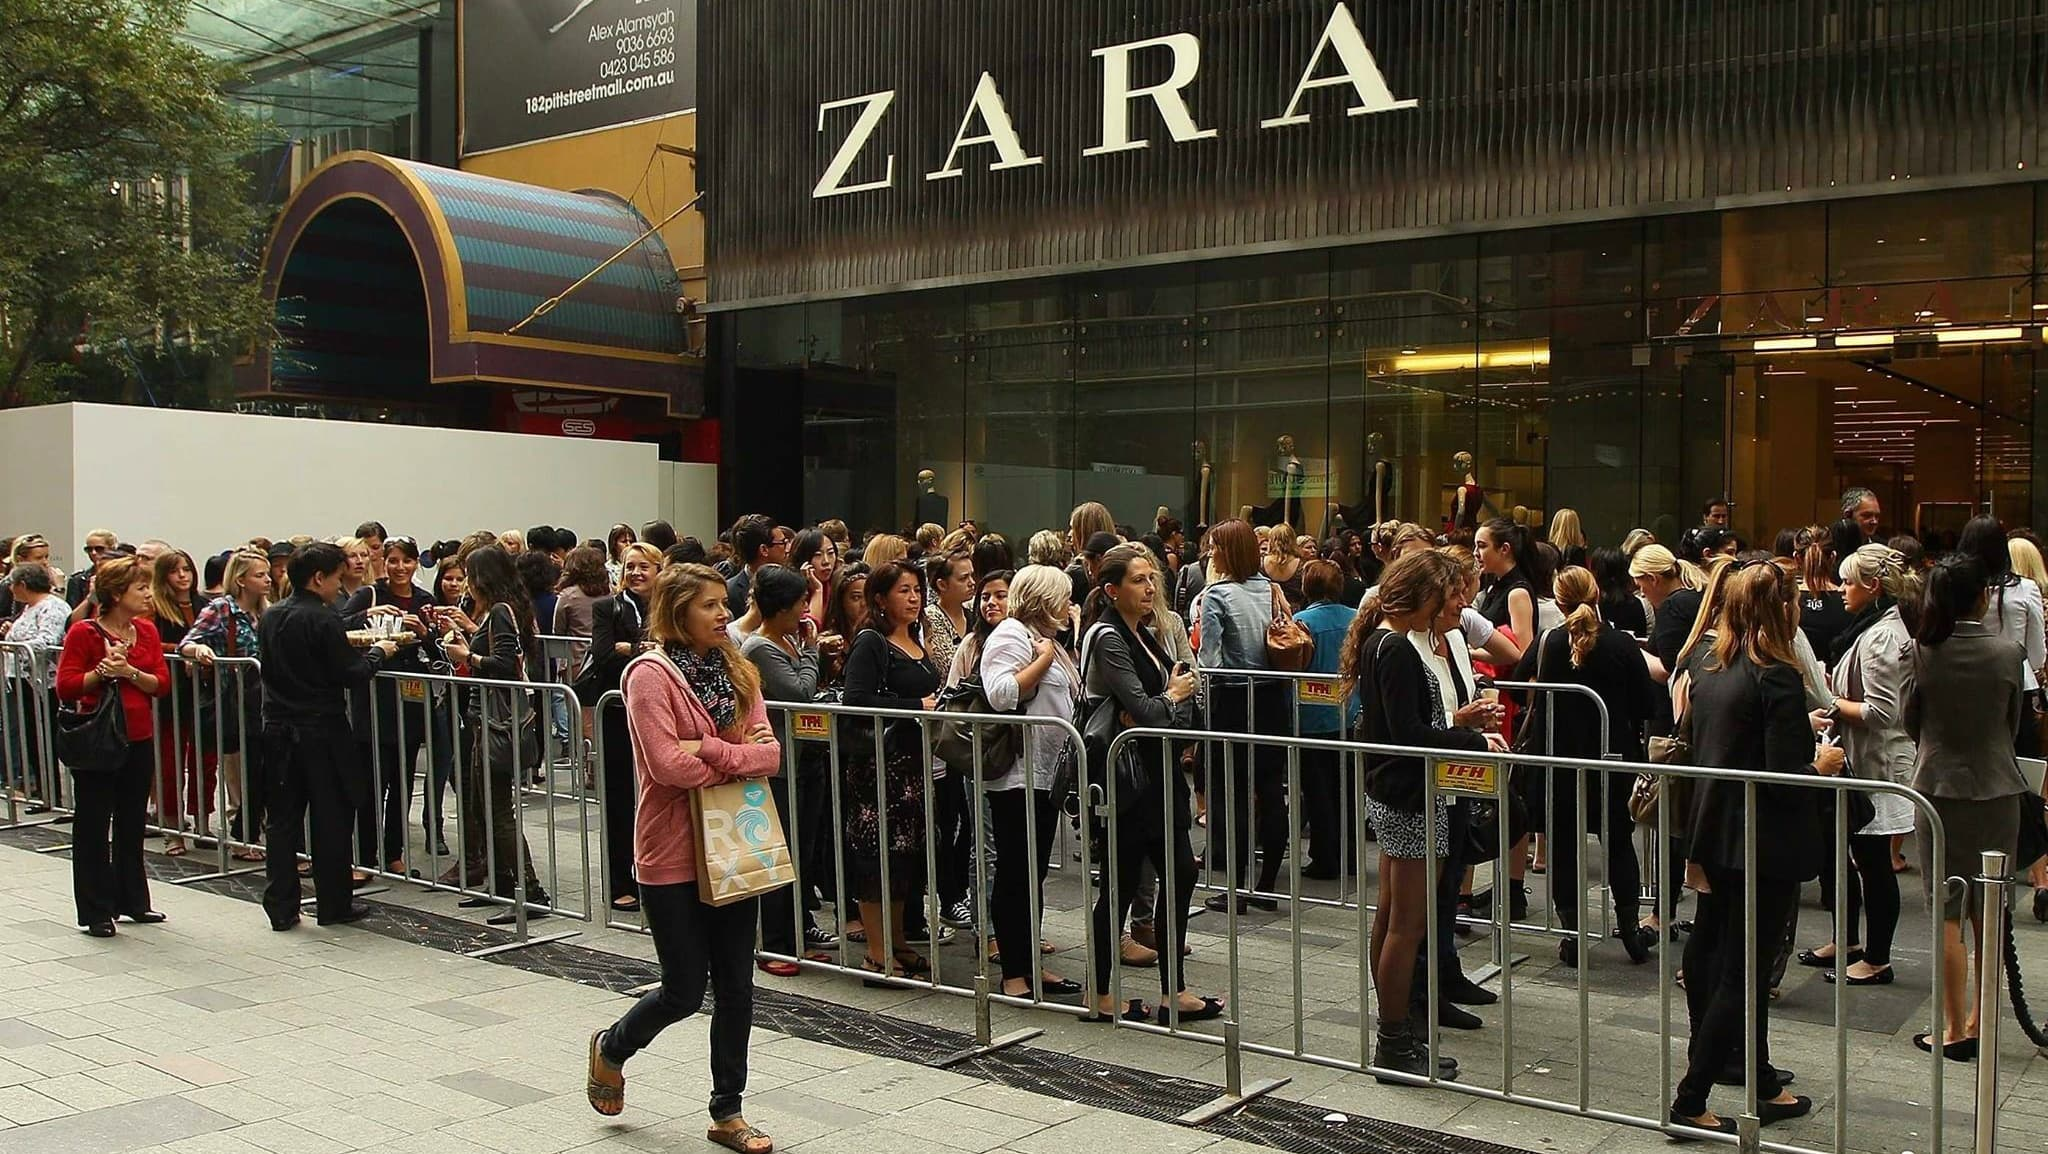 10 stages of realising your favourite high-street brand might be racist